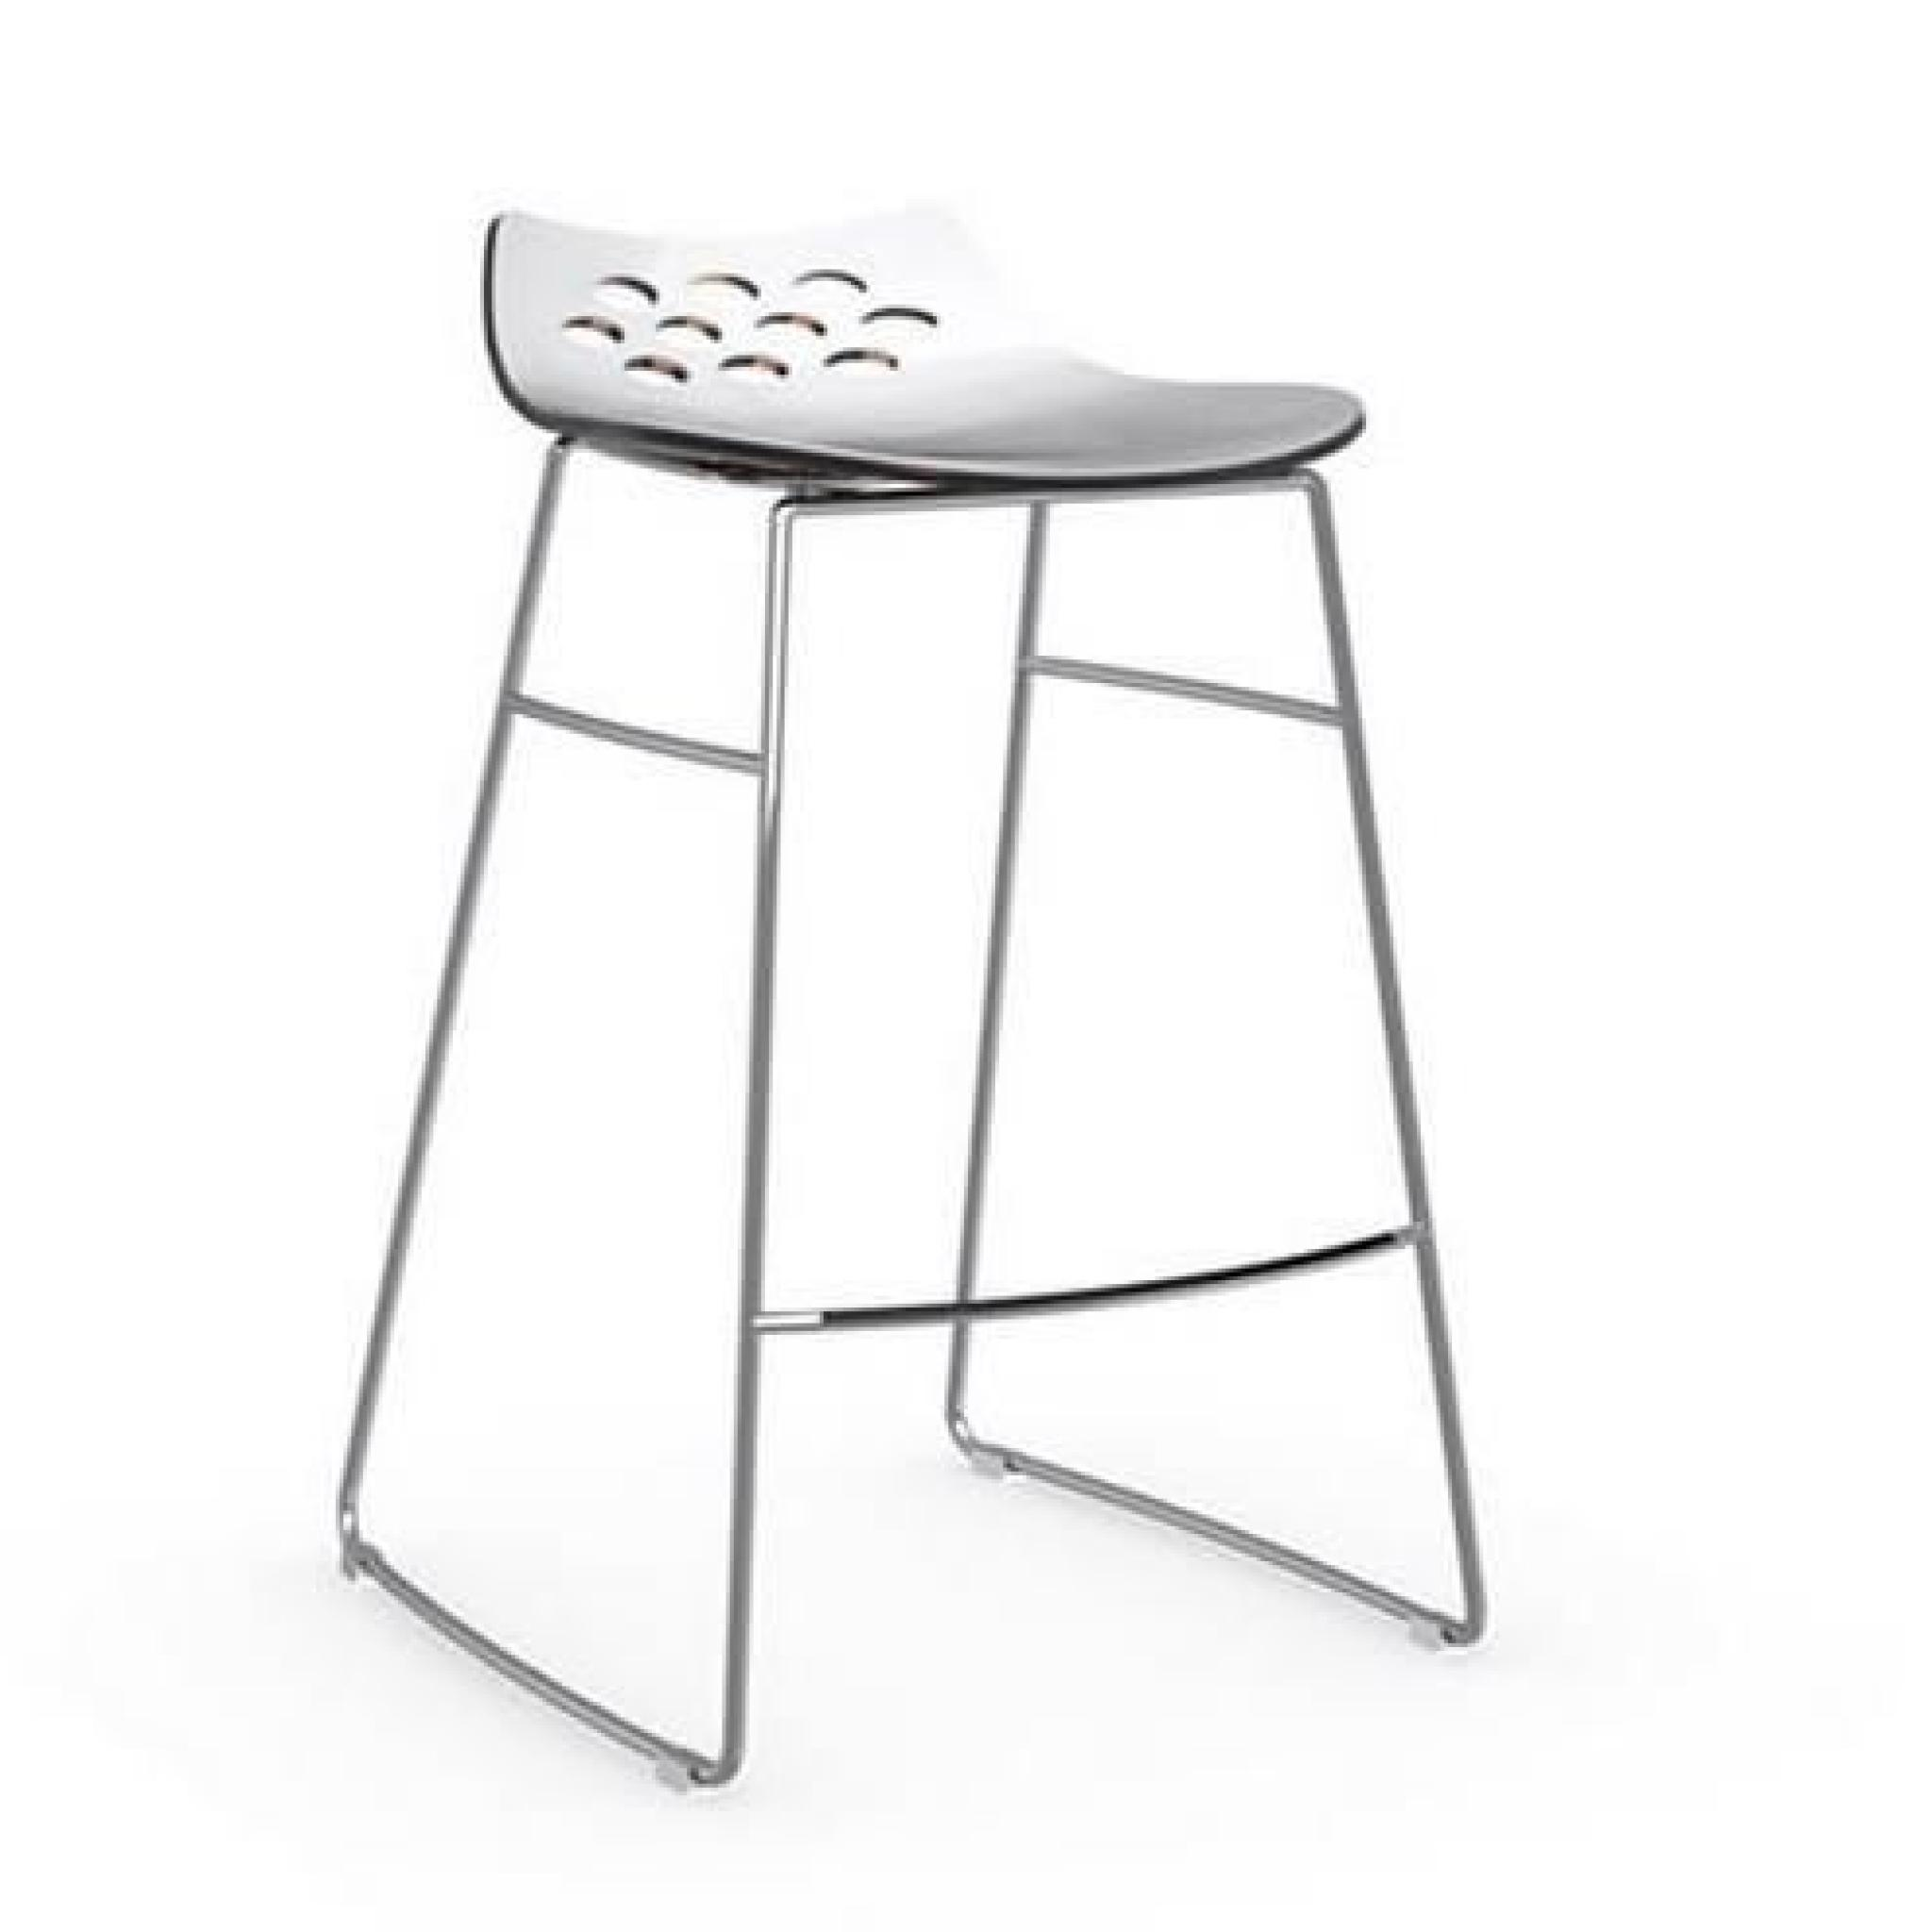 tabouret de bar design jam de calligaris orange et blanc. Black Bedroom Furniture Sets. Home Design Ideas